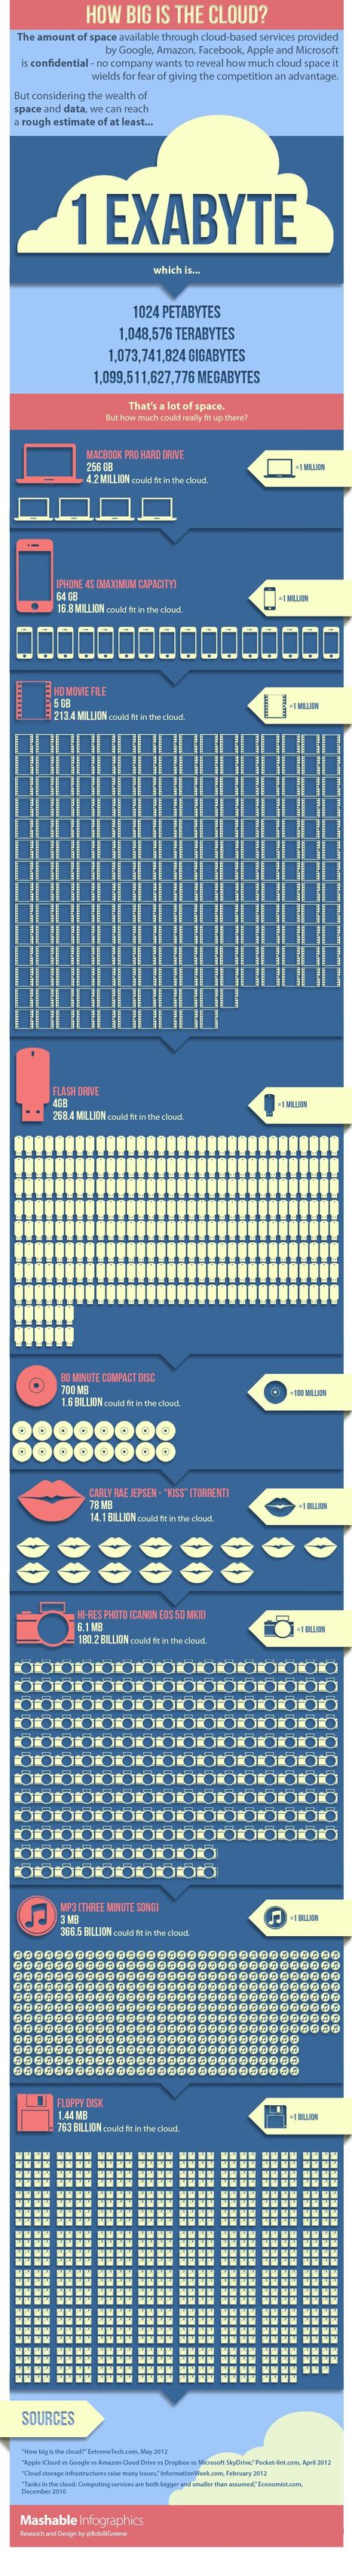 How Big Is the Cloud? [INFOGRAPHIC] | Social Media Resources & e-learning | Scoop.it